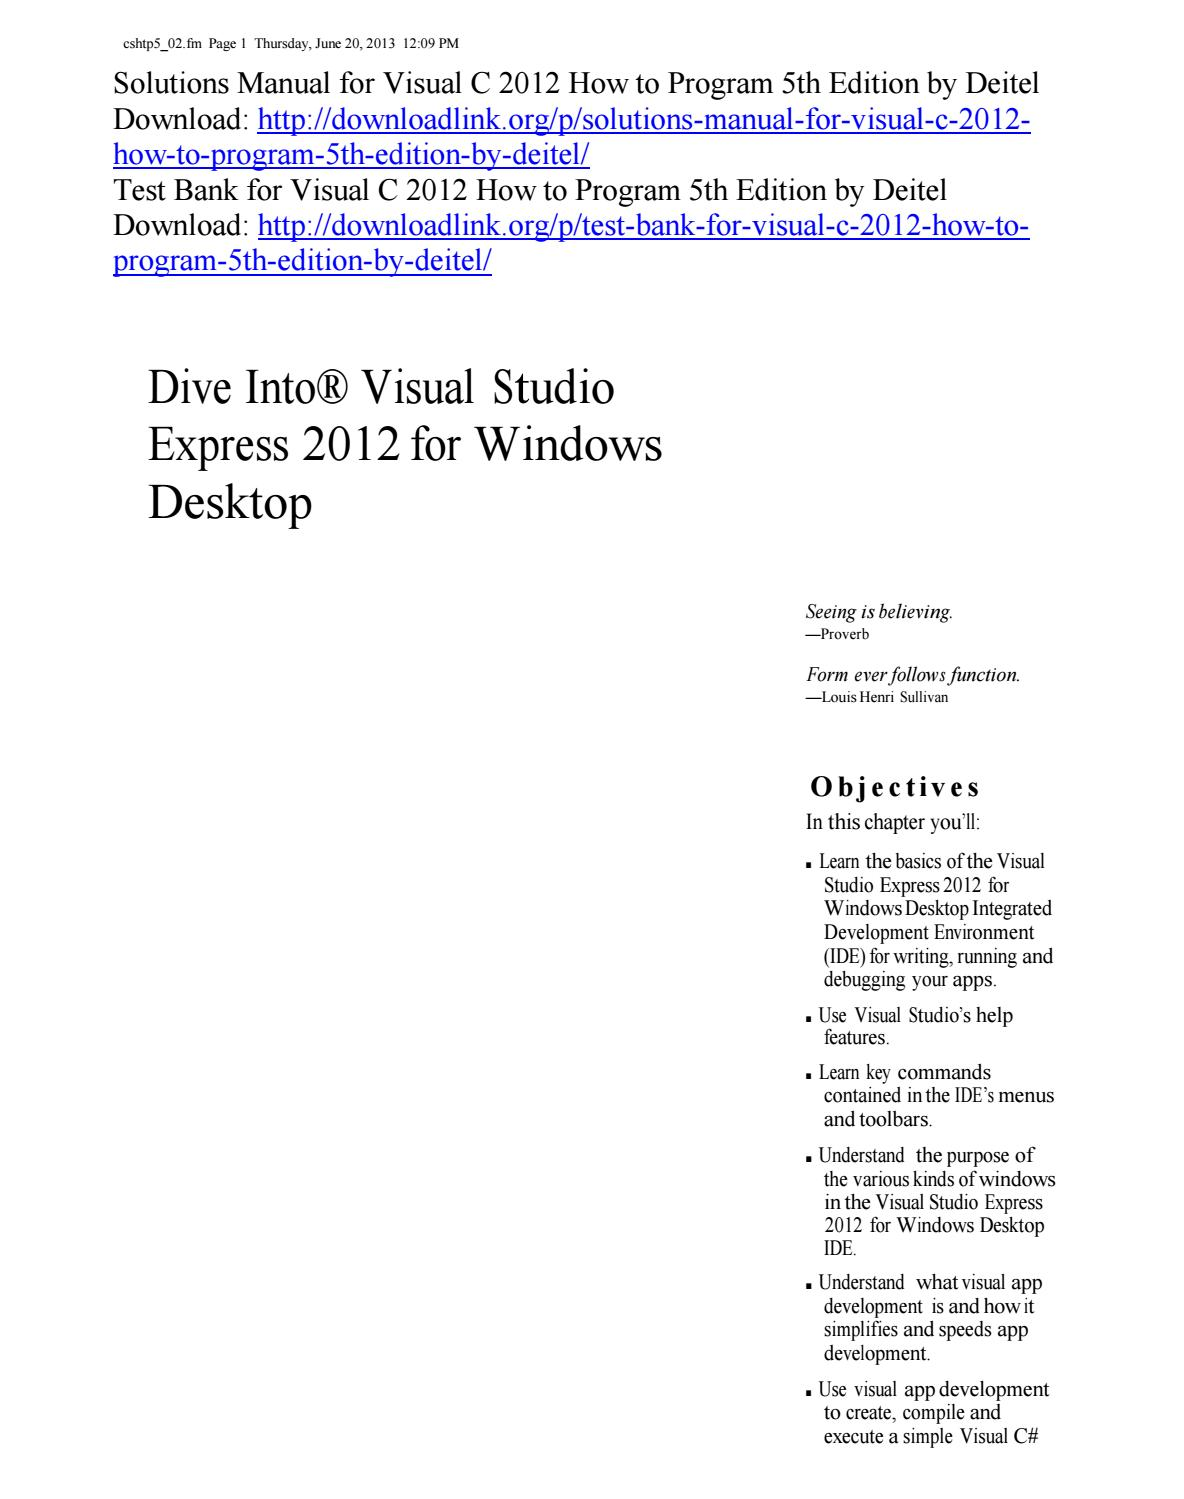 Solutions Manual for Visual C 2012 How to Program 5th Edition by Deitel by  ys076 - issuu